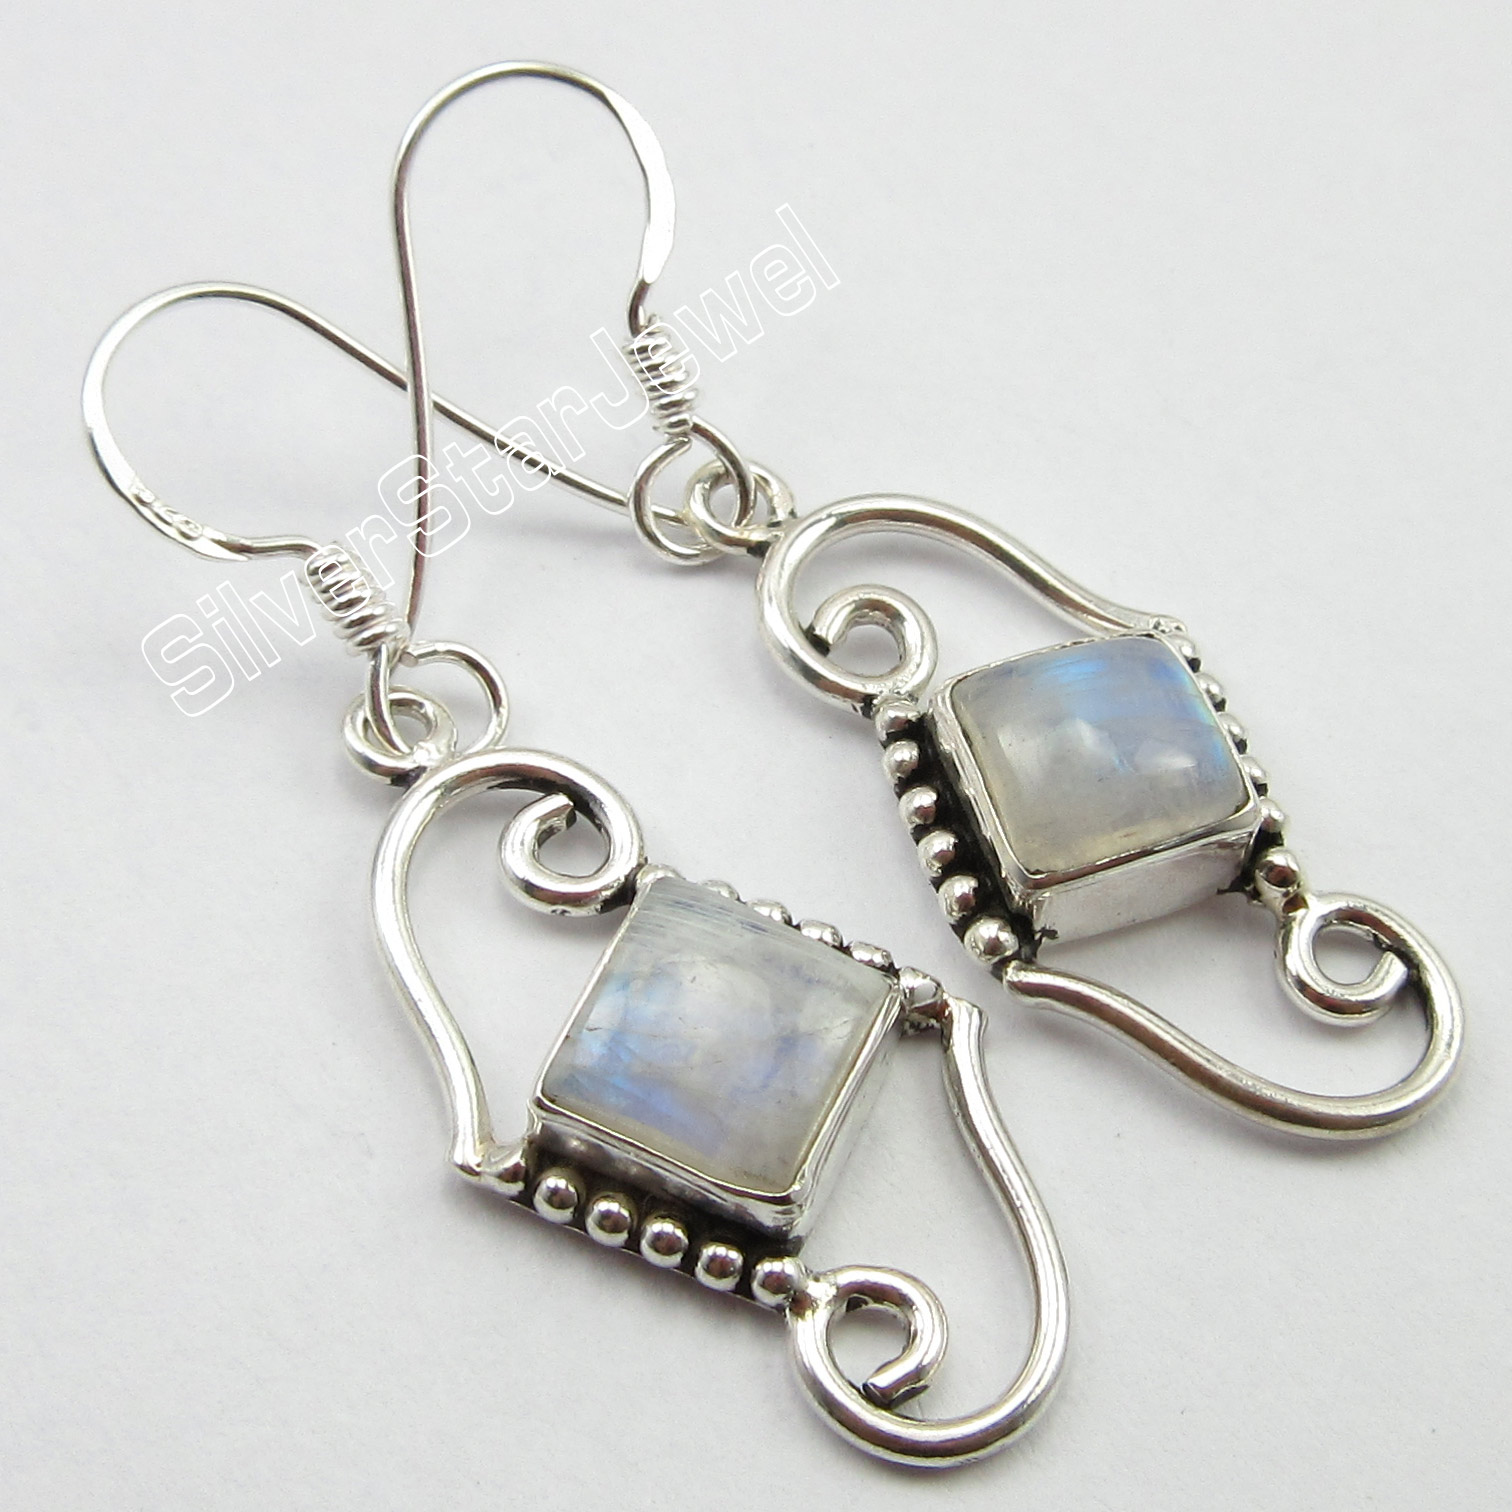 Chanti International WELL MADE Earrings, Solid Silver RAINBOW MOONSTONE Jewelry 4.2 CM 4.5 Grams